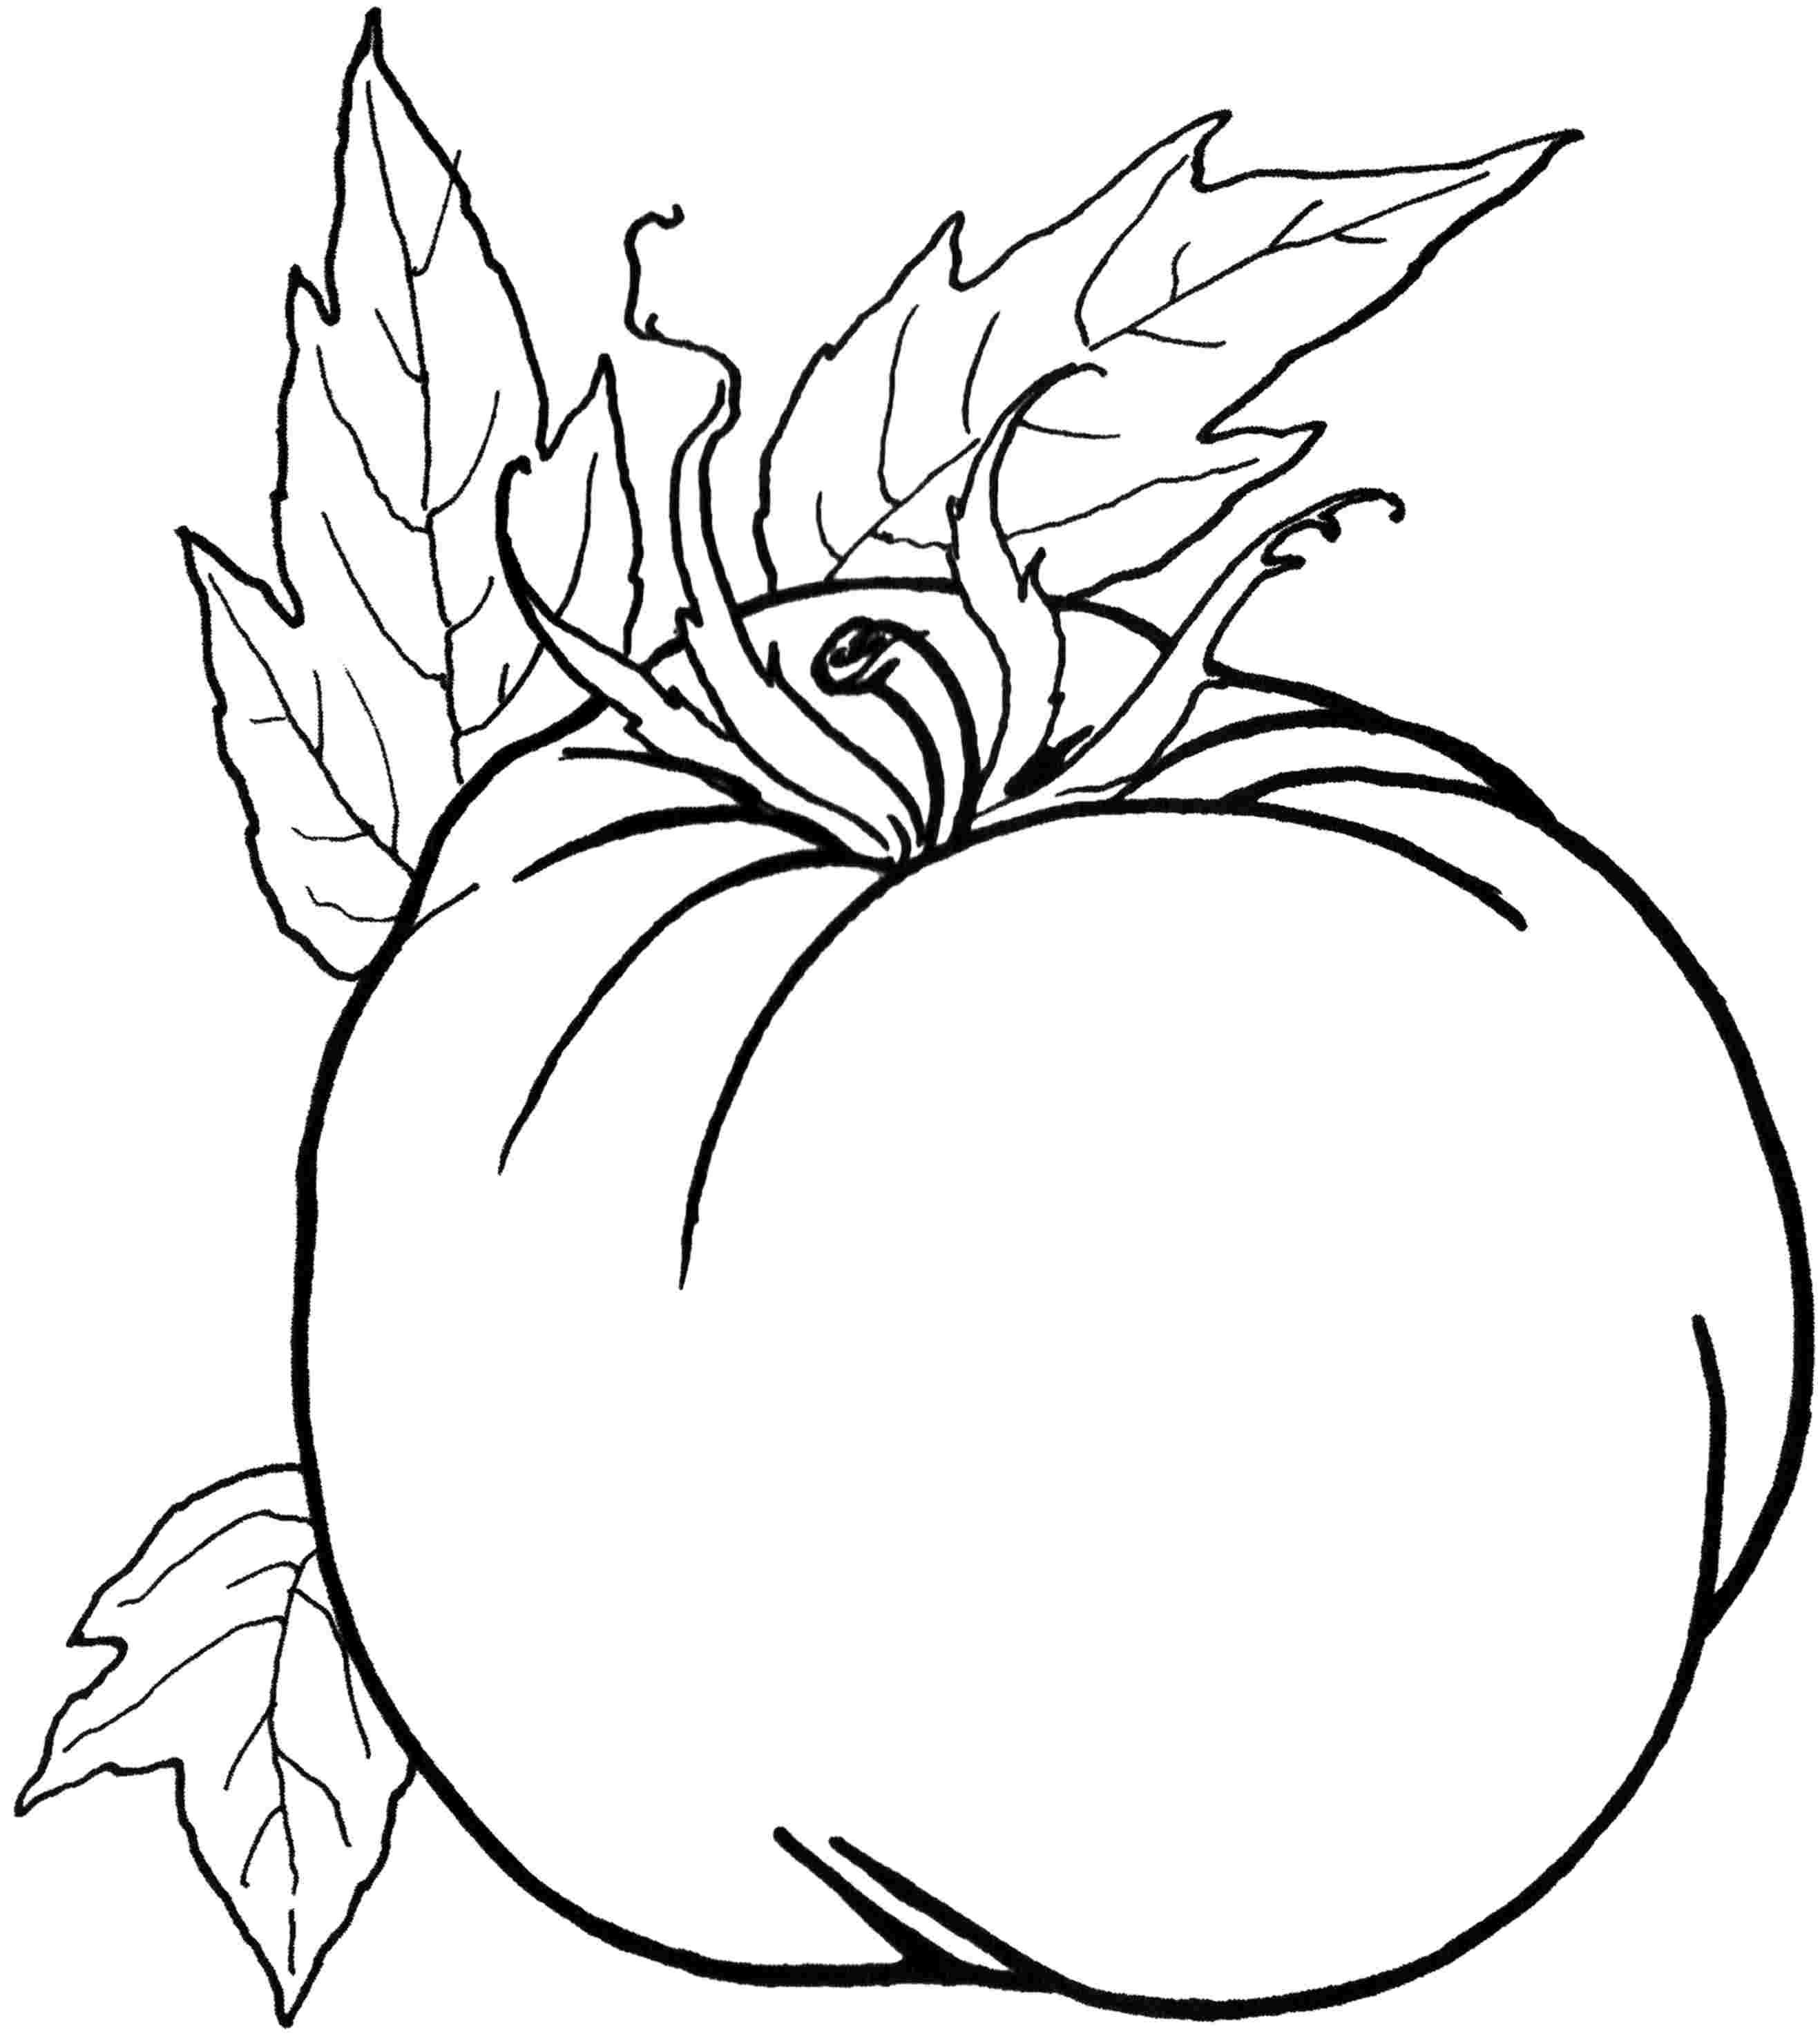 Vegetables Coloring Pages 12 Kids Printables